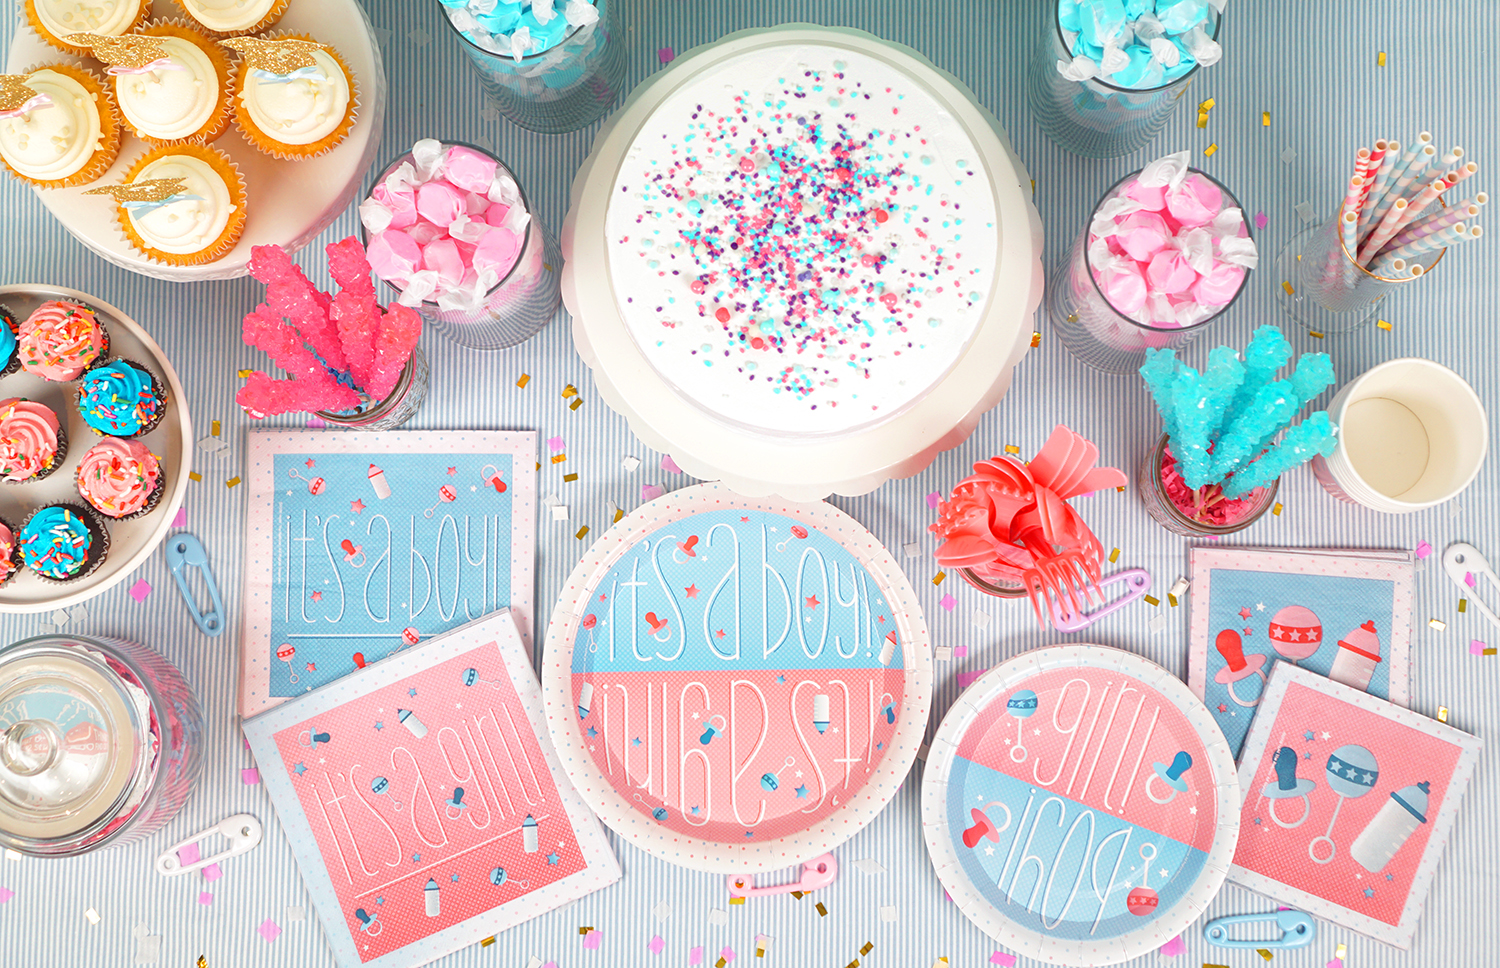 Overhead shot of gender reveal party table and paper goods